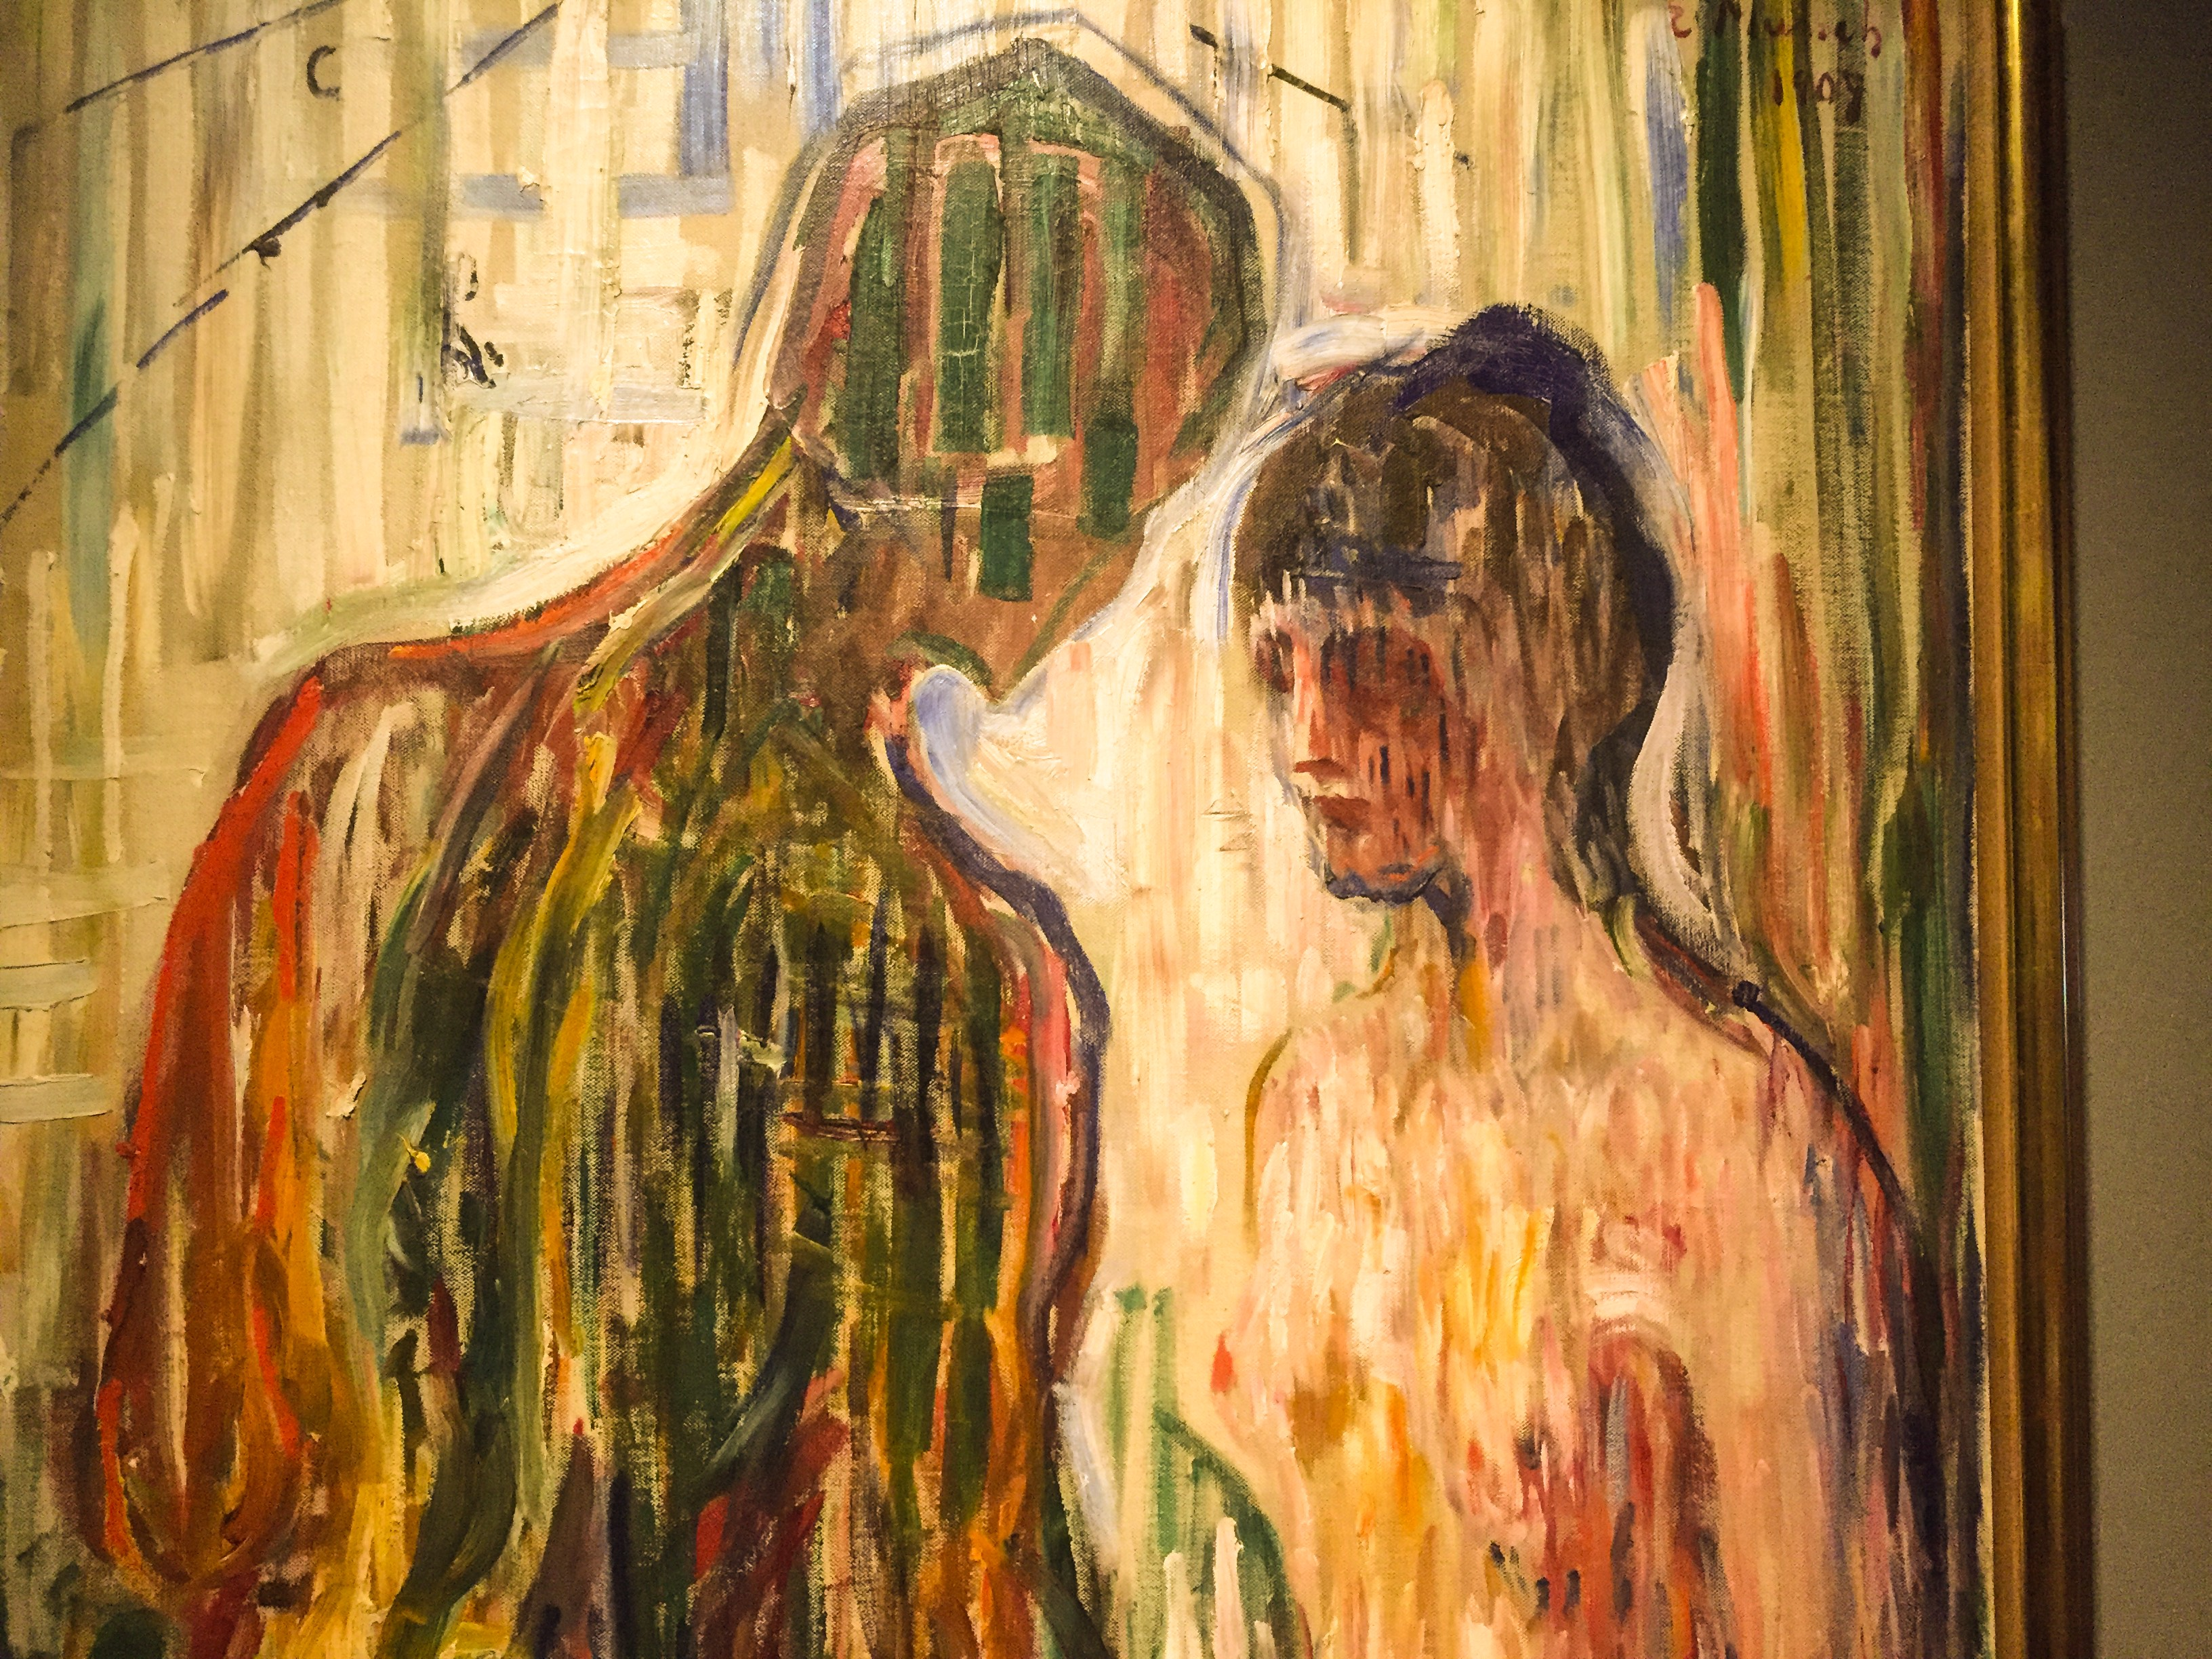 advard-munch-amor-and-psyche